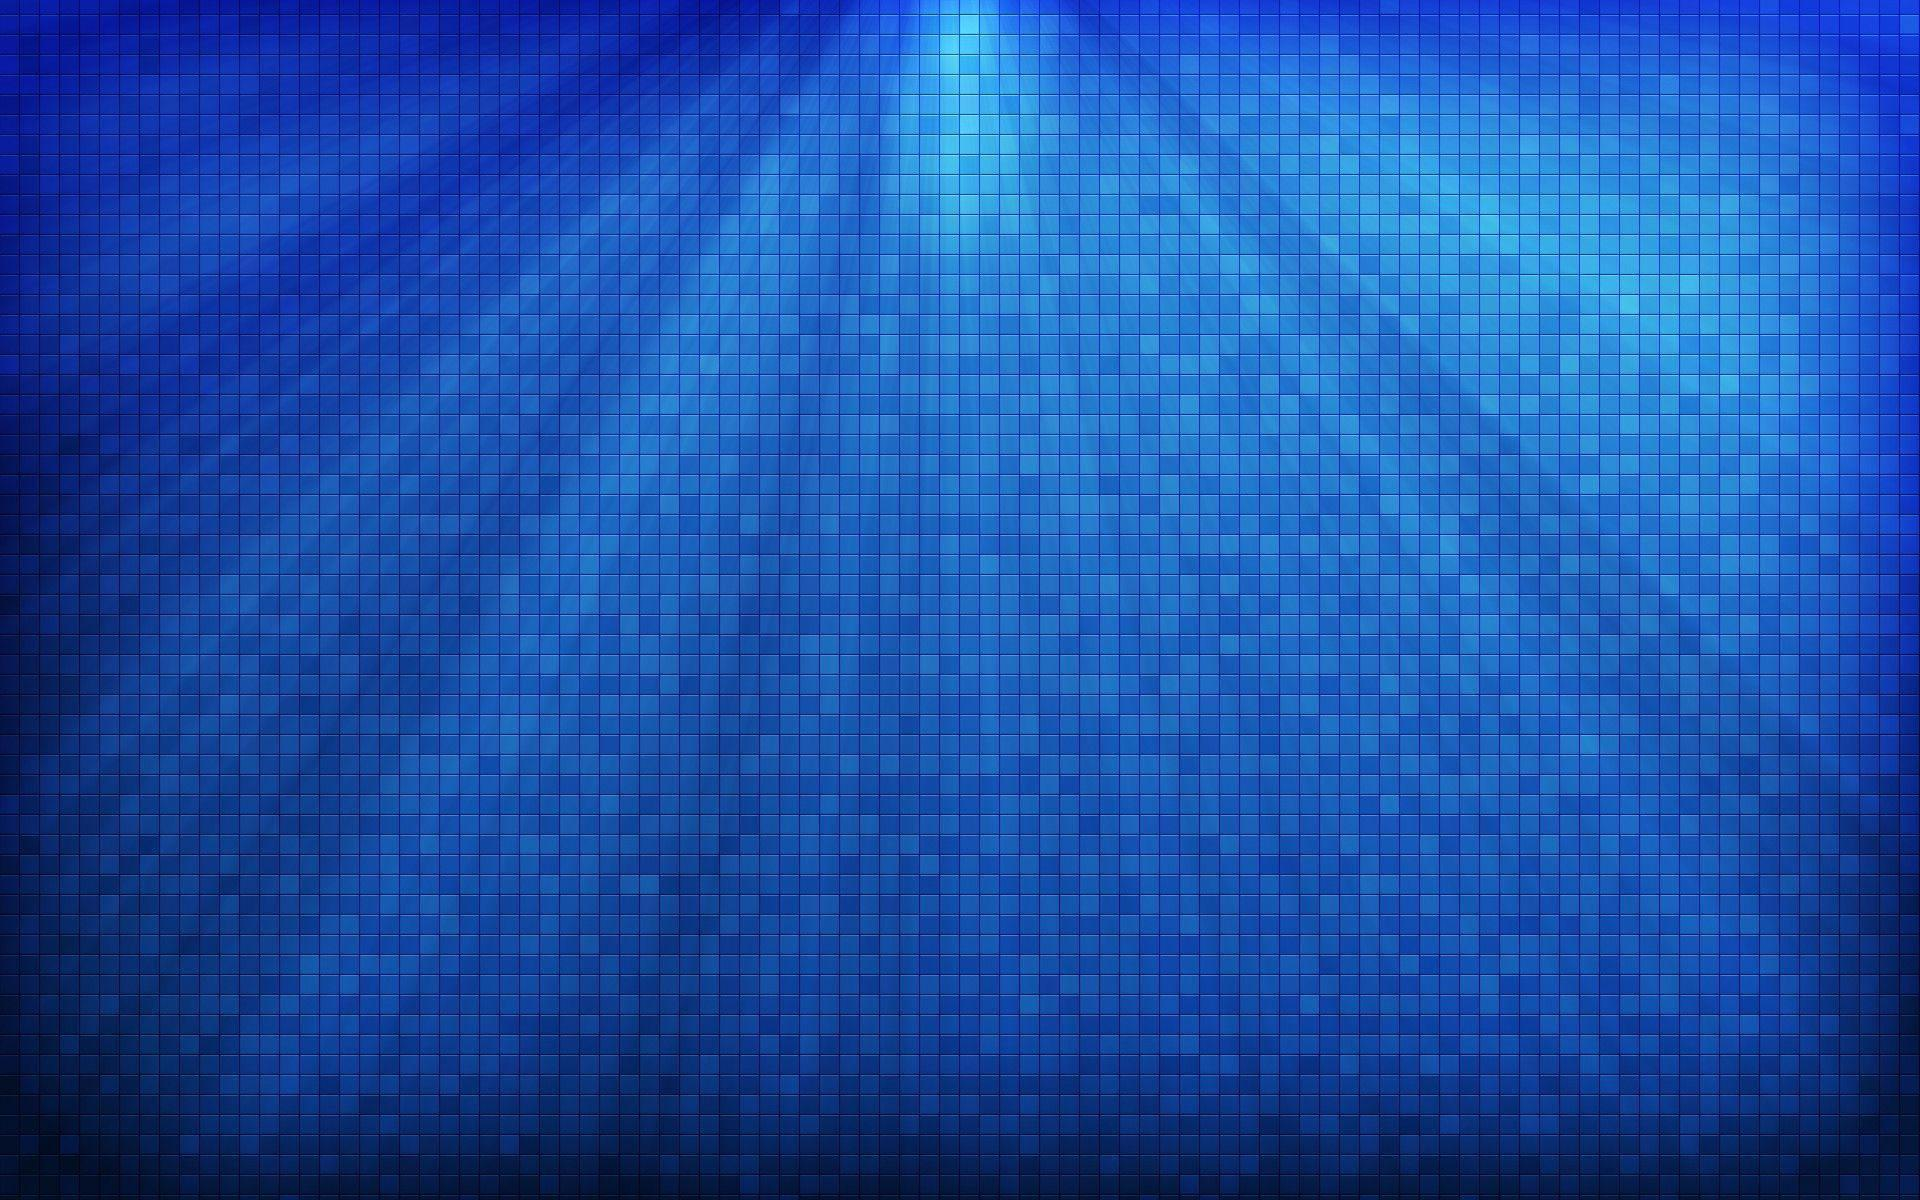 Dark Blue Backgrounds Hd 1080P 12 HD Wallpapers